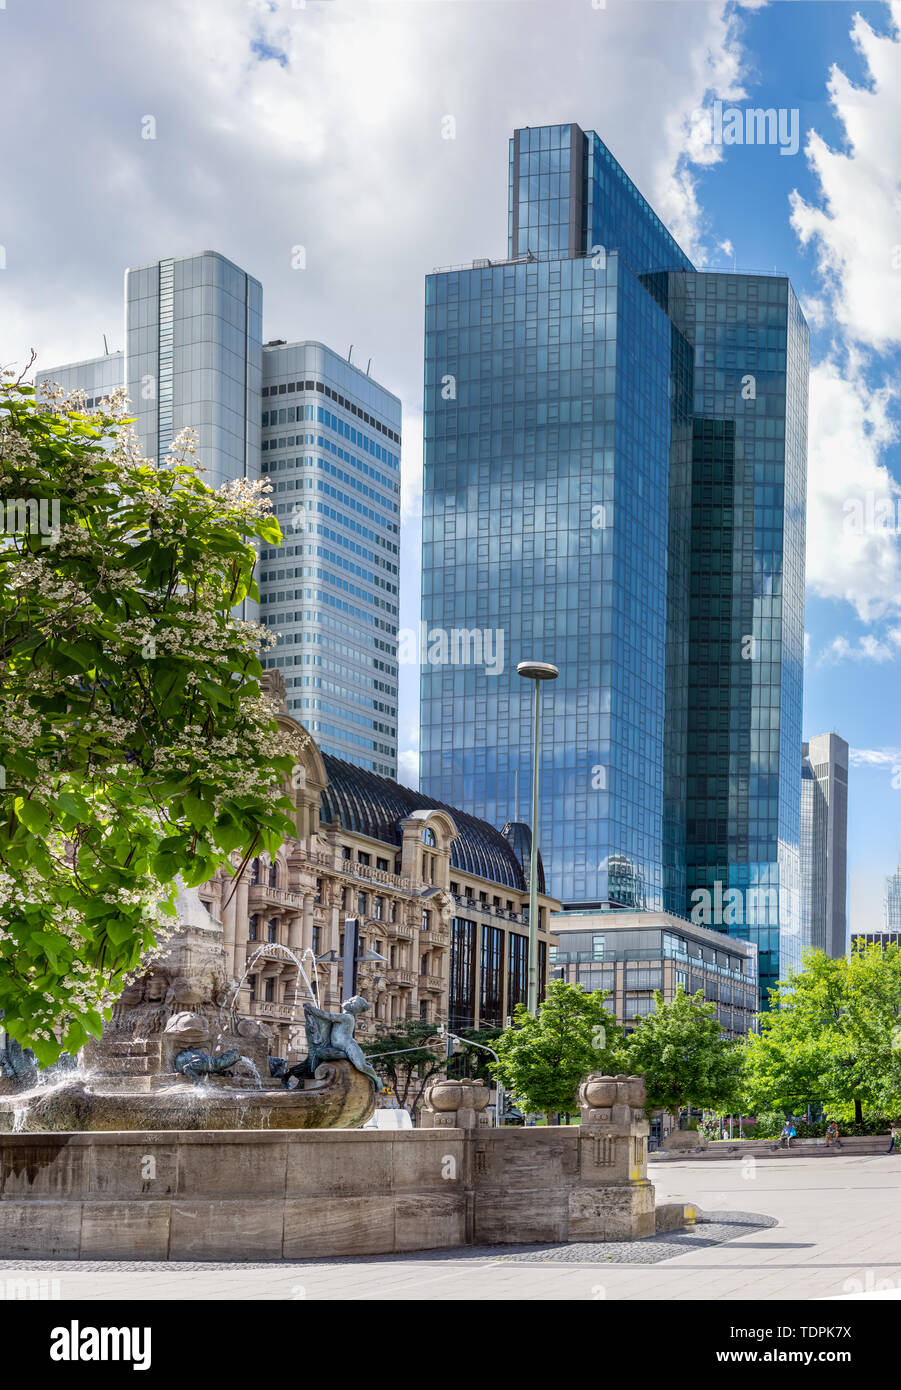 Skyscrapers behind a Fountain in a Urban Area of a Modern City - Stock Image